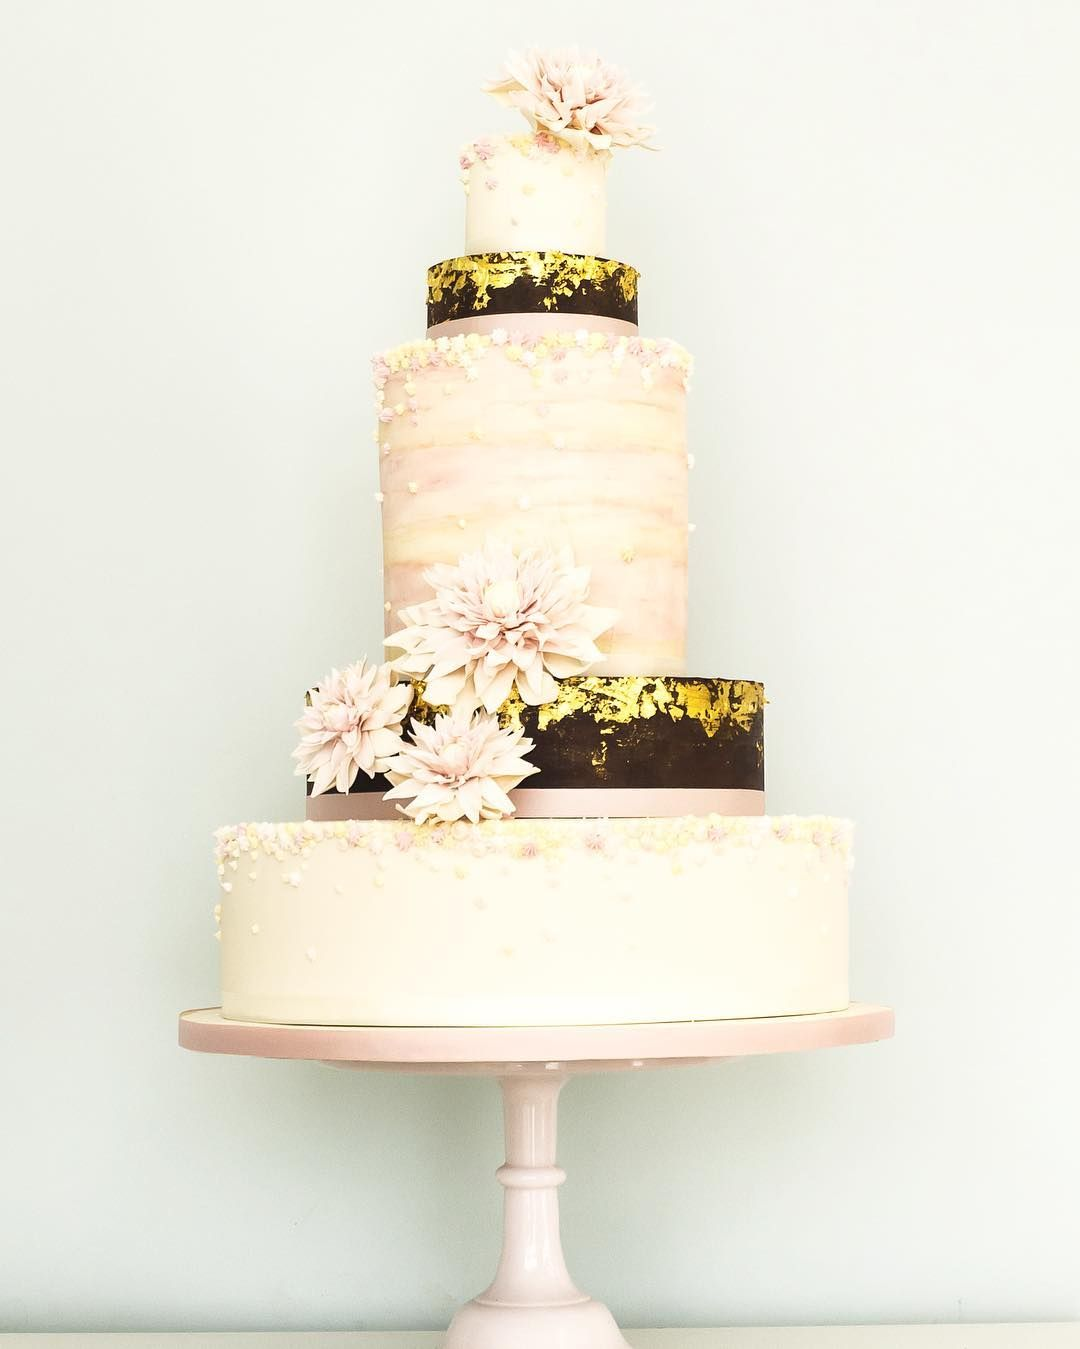 The Neopolitan - Chocolate and 24ct #gold #weddingcake